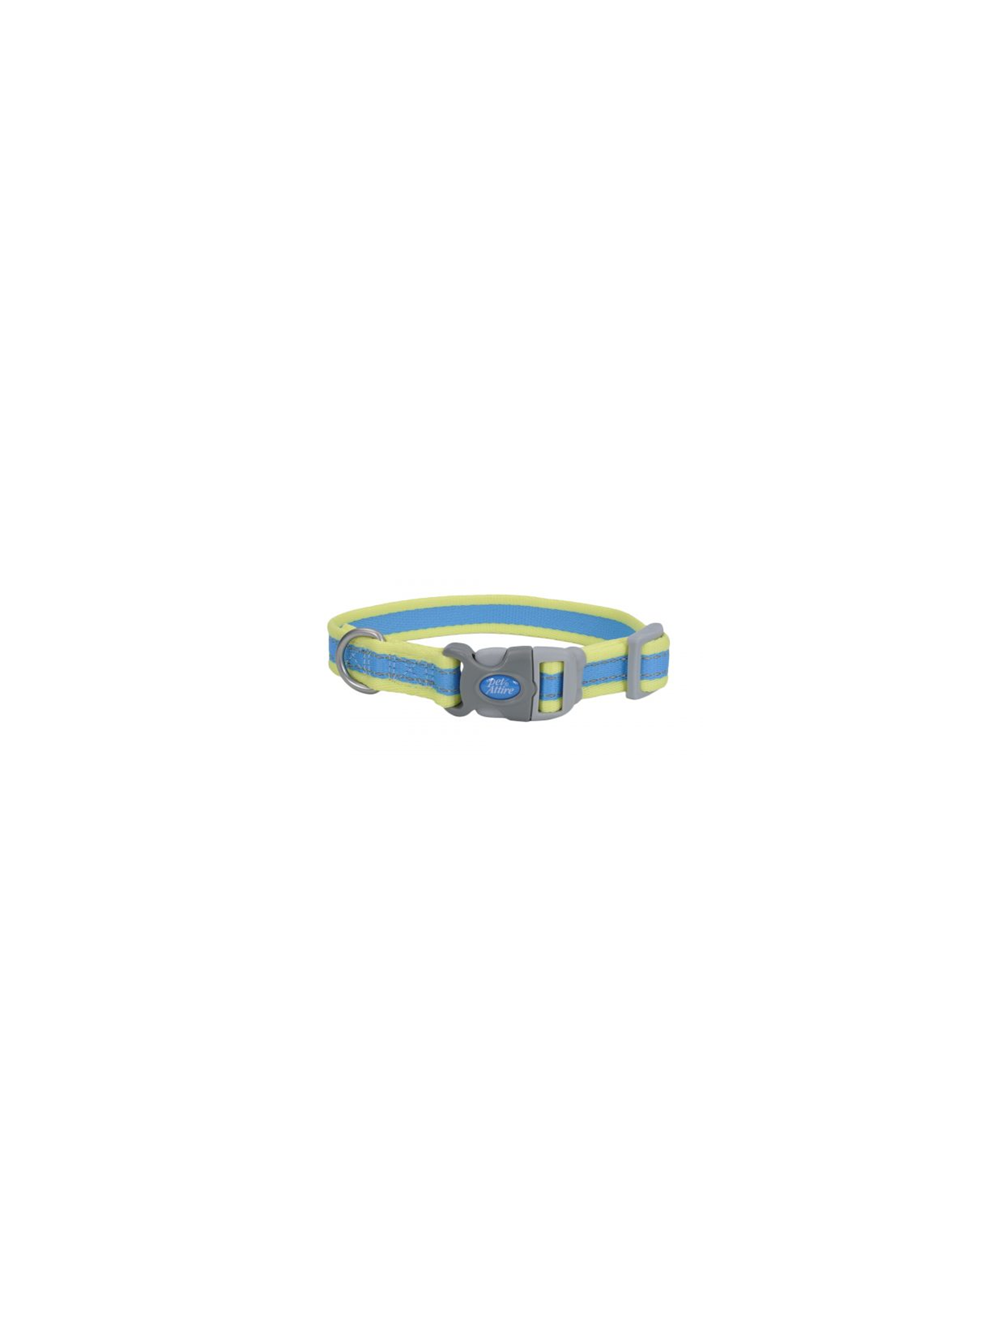 Collar Pro Azul Con Amarillo Neón Medium 3/4 - P80